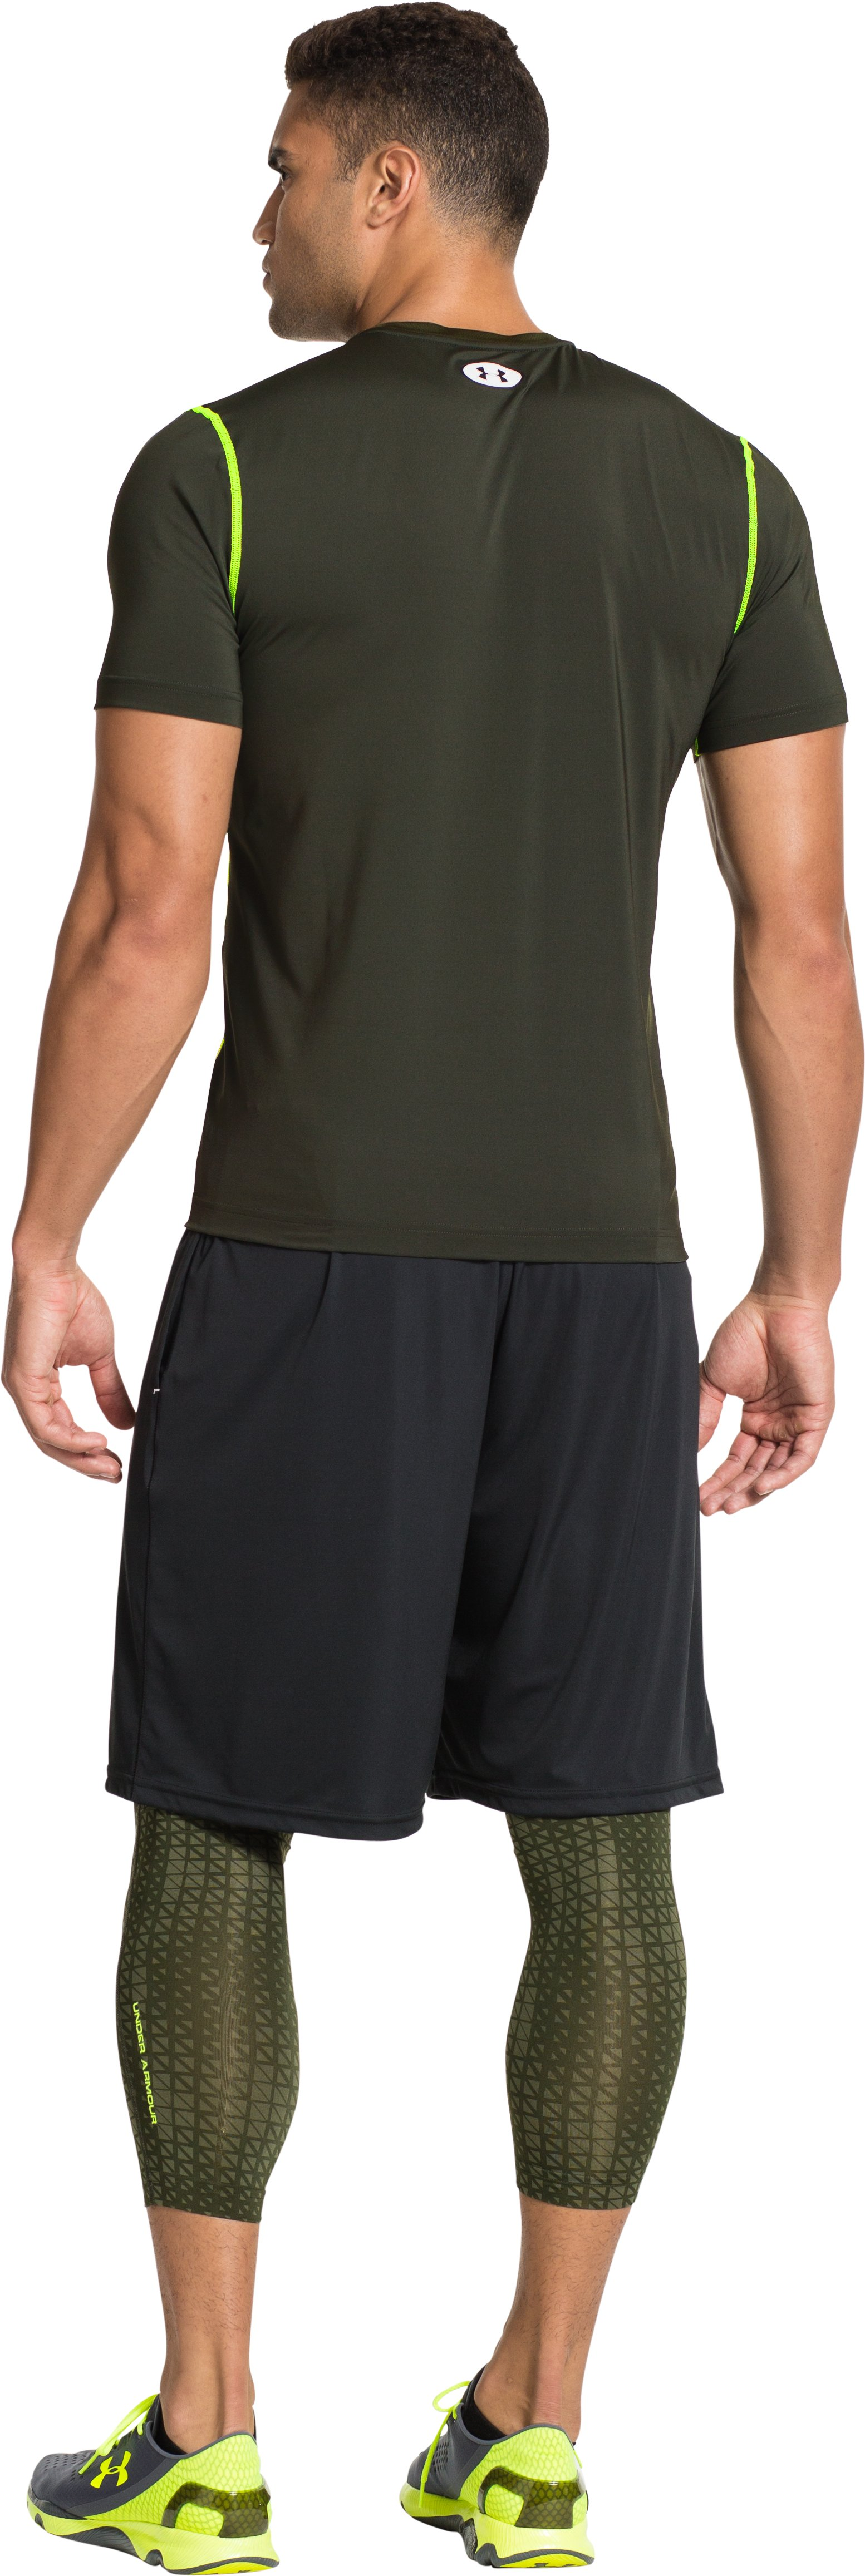 Men's HeatGear® Sonic Fitted Short Sleeve, Rifle Green, Back